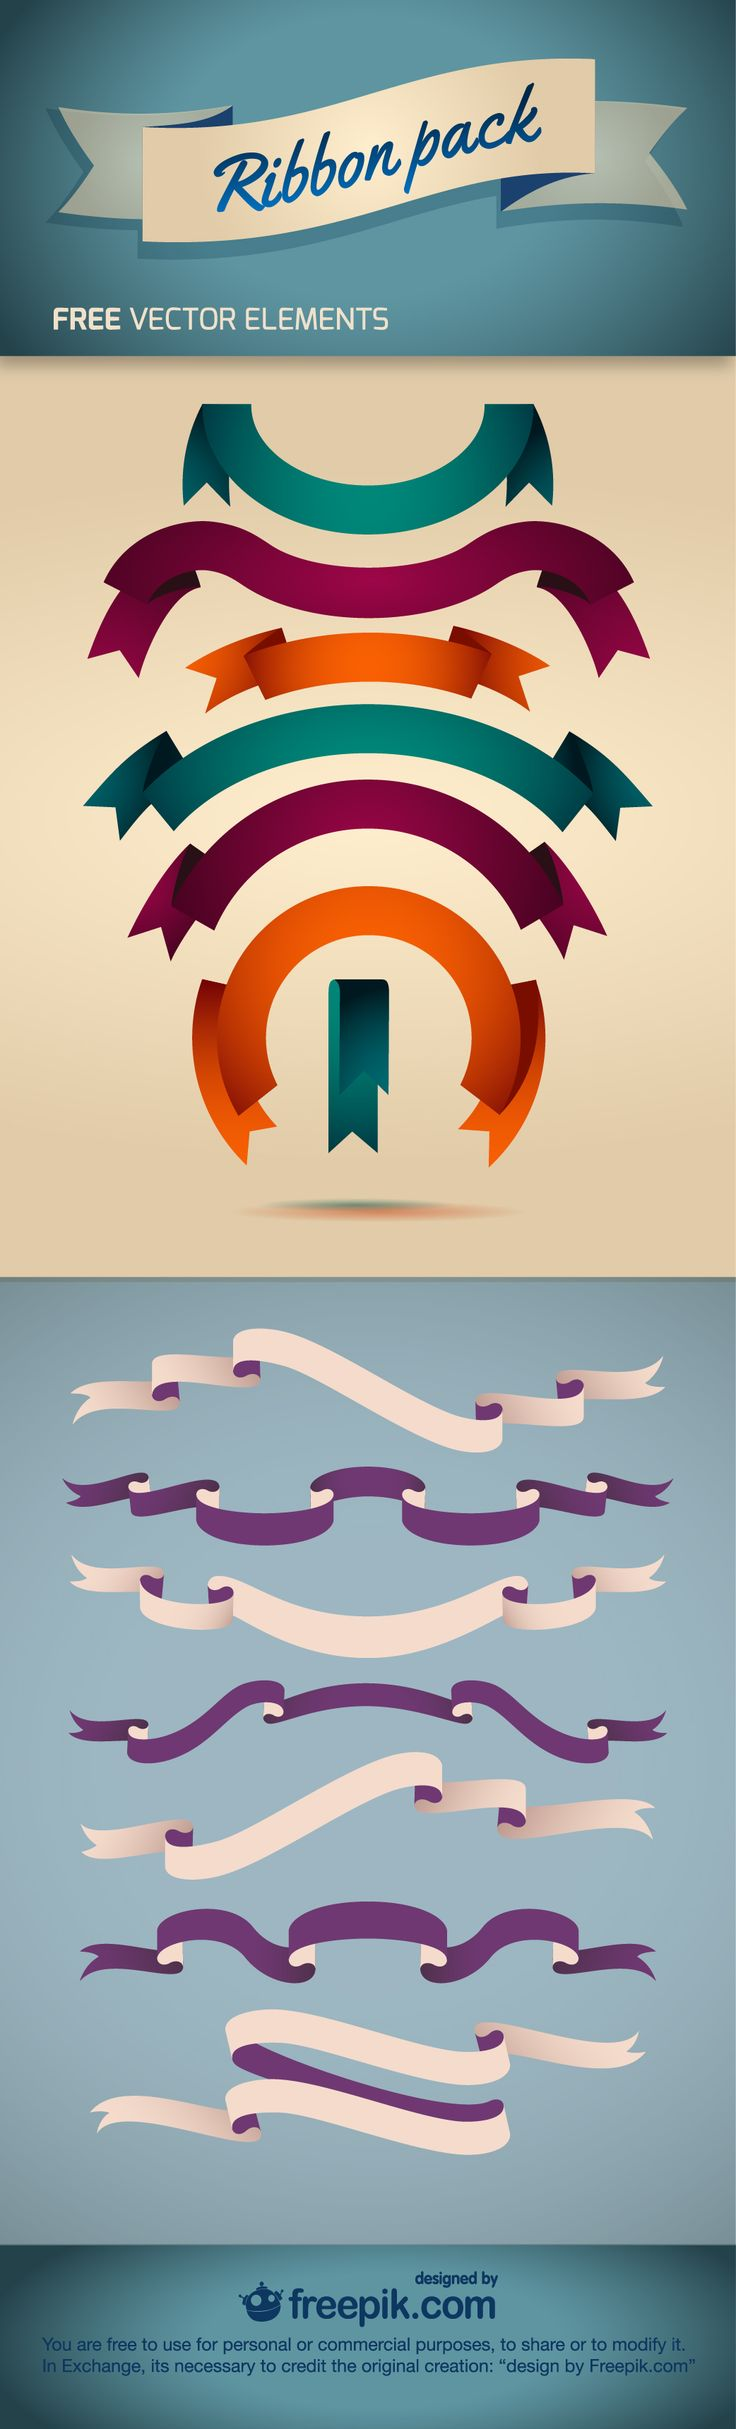 Ribbon Pack - Free Vector Element